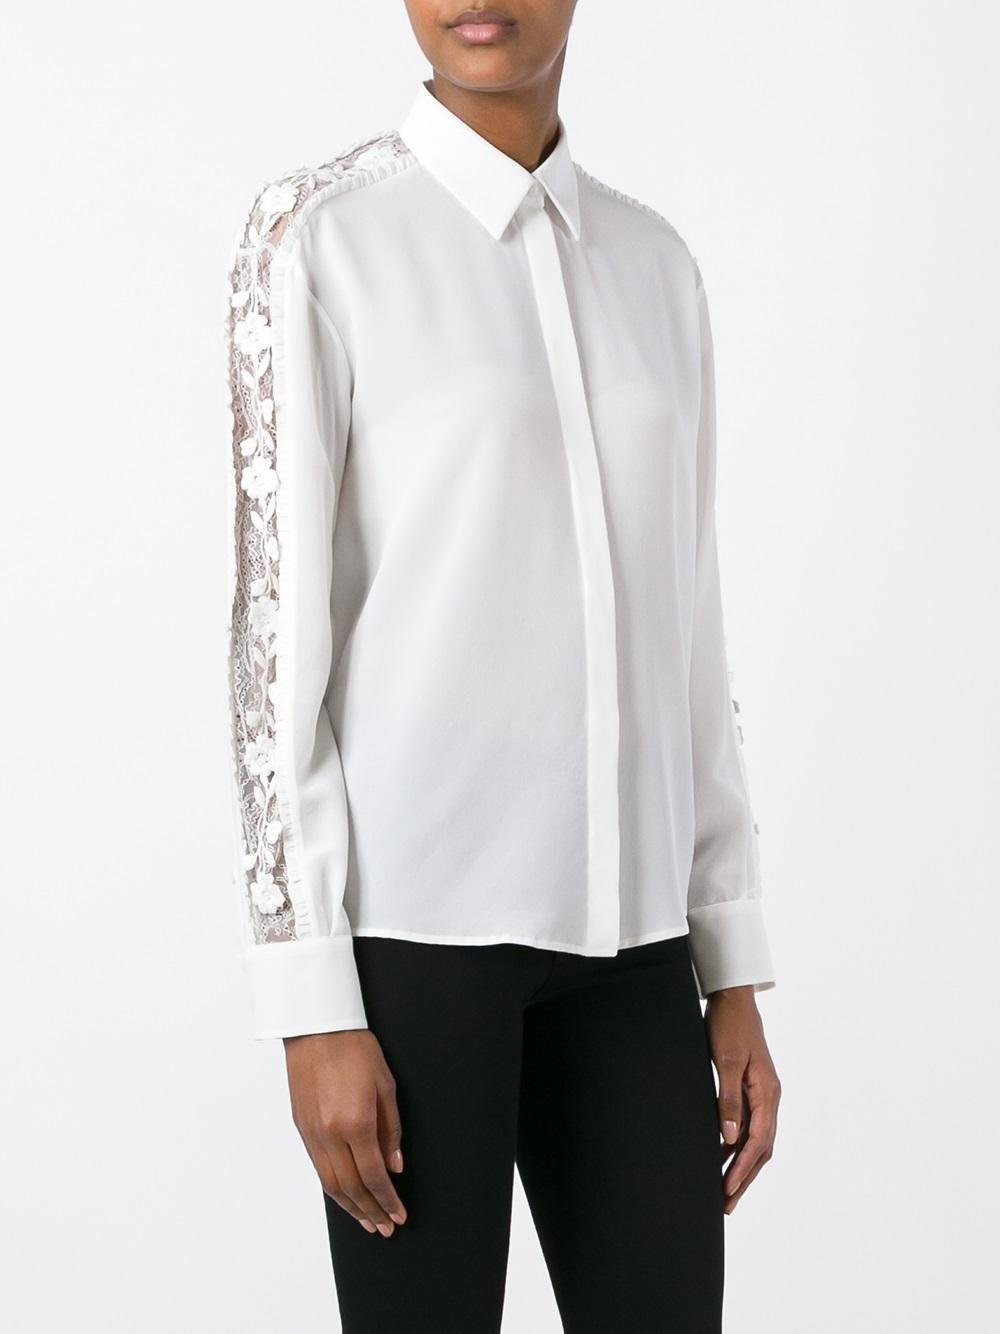 sheer sleeve detail shirt - White Rochas Cheap Prices Reliable Buy Cheap Outlet Locations Choice Online Sale Outlet Store Cheap Sale Low Shipping Fee ANOFVH